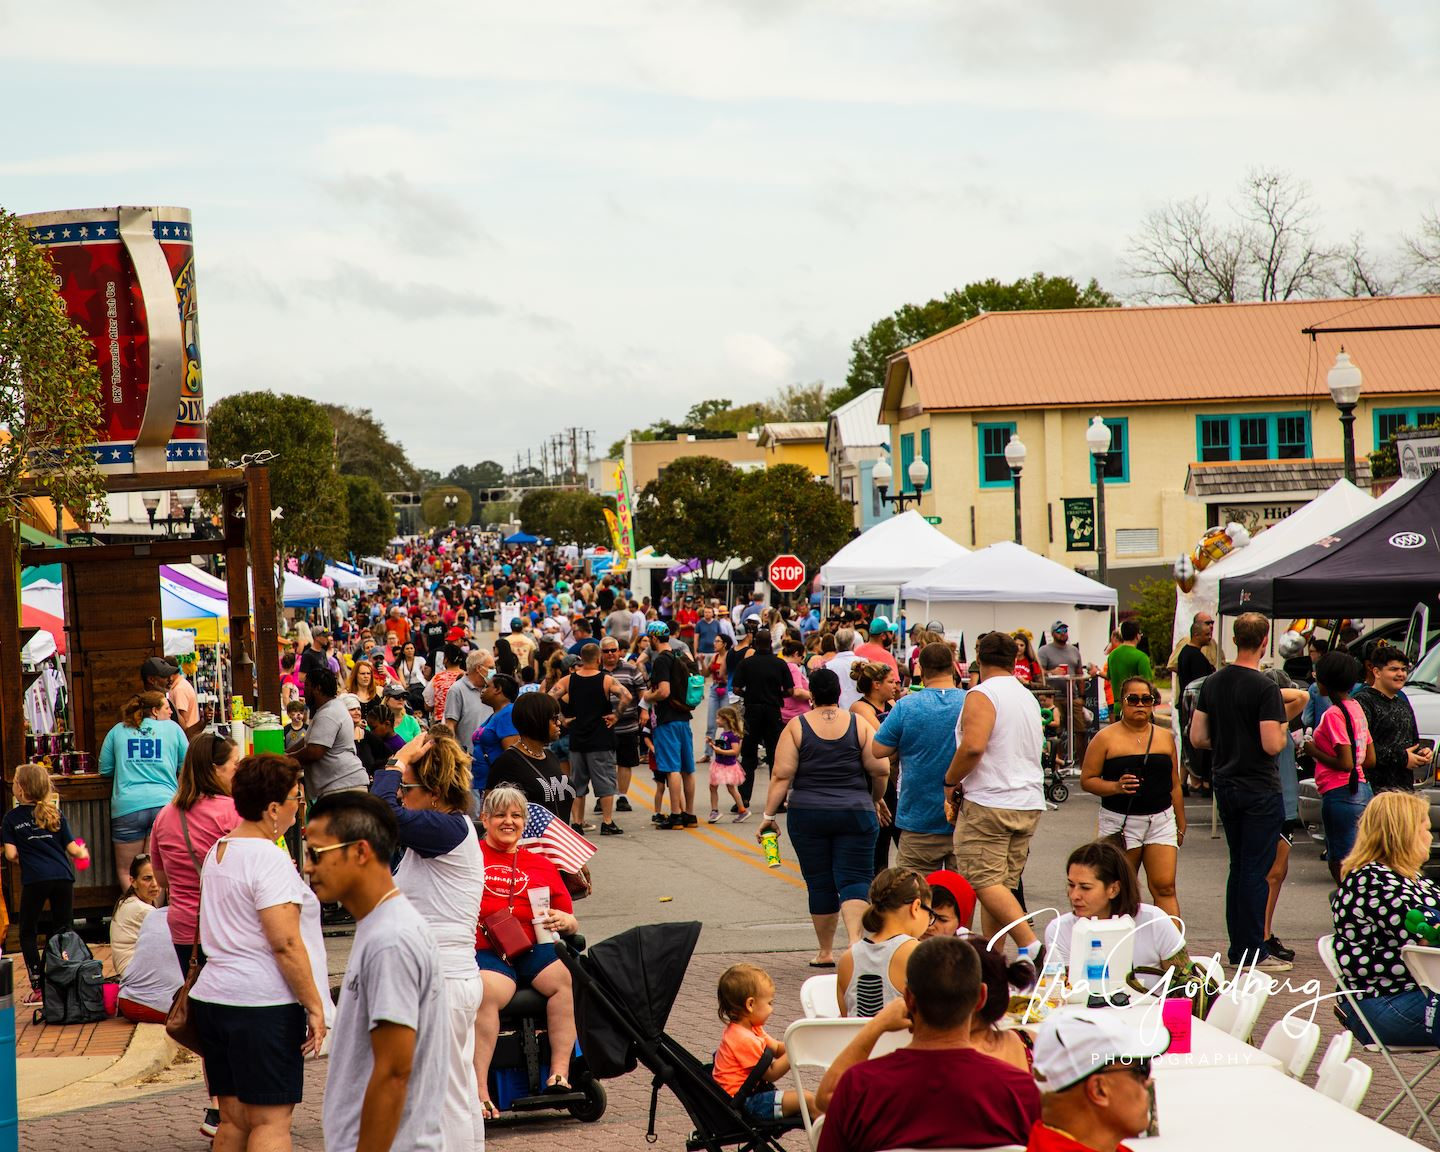 Organizers estimate as many as 12,000 people attended this year's Triple B barbecue festival March 2